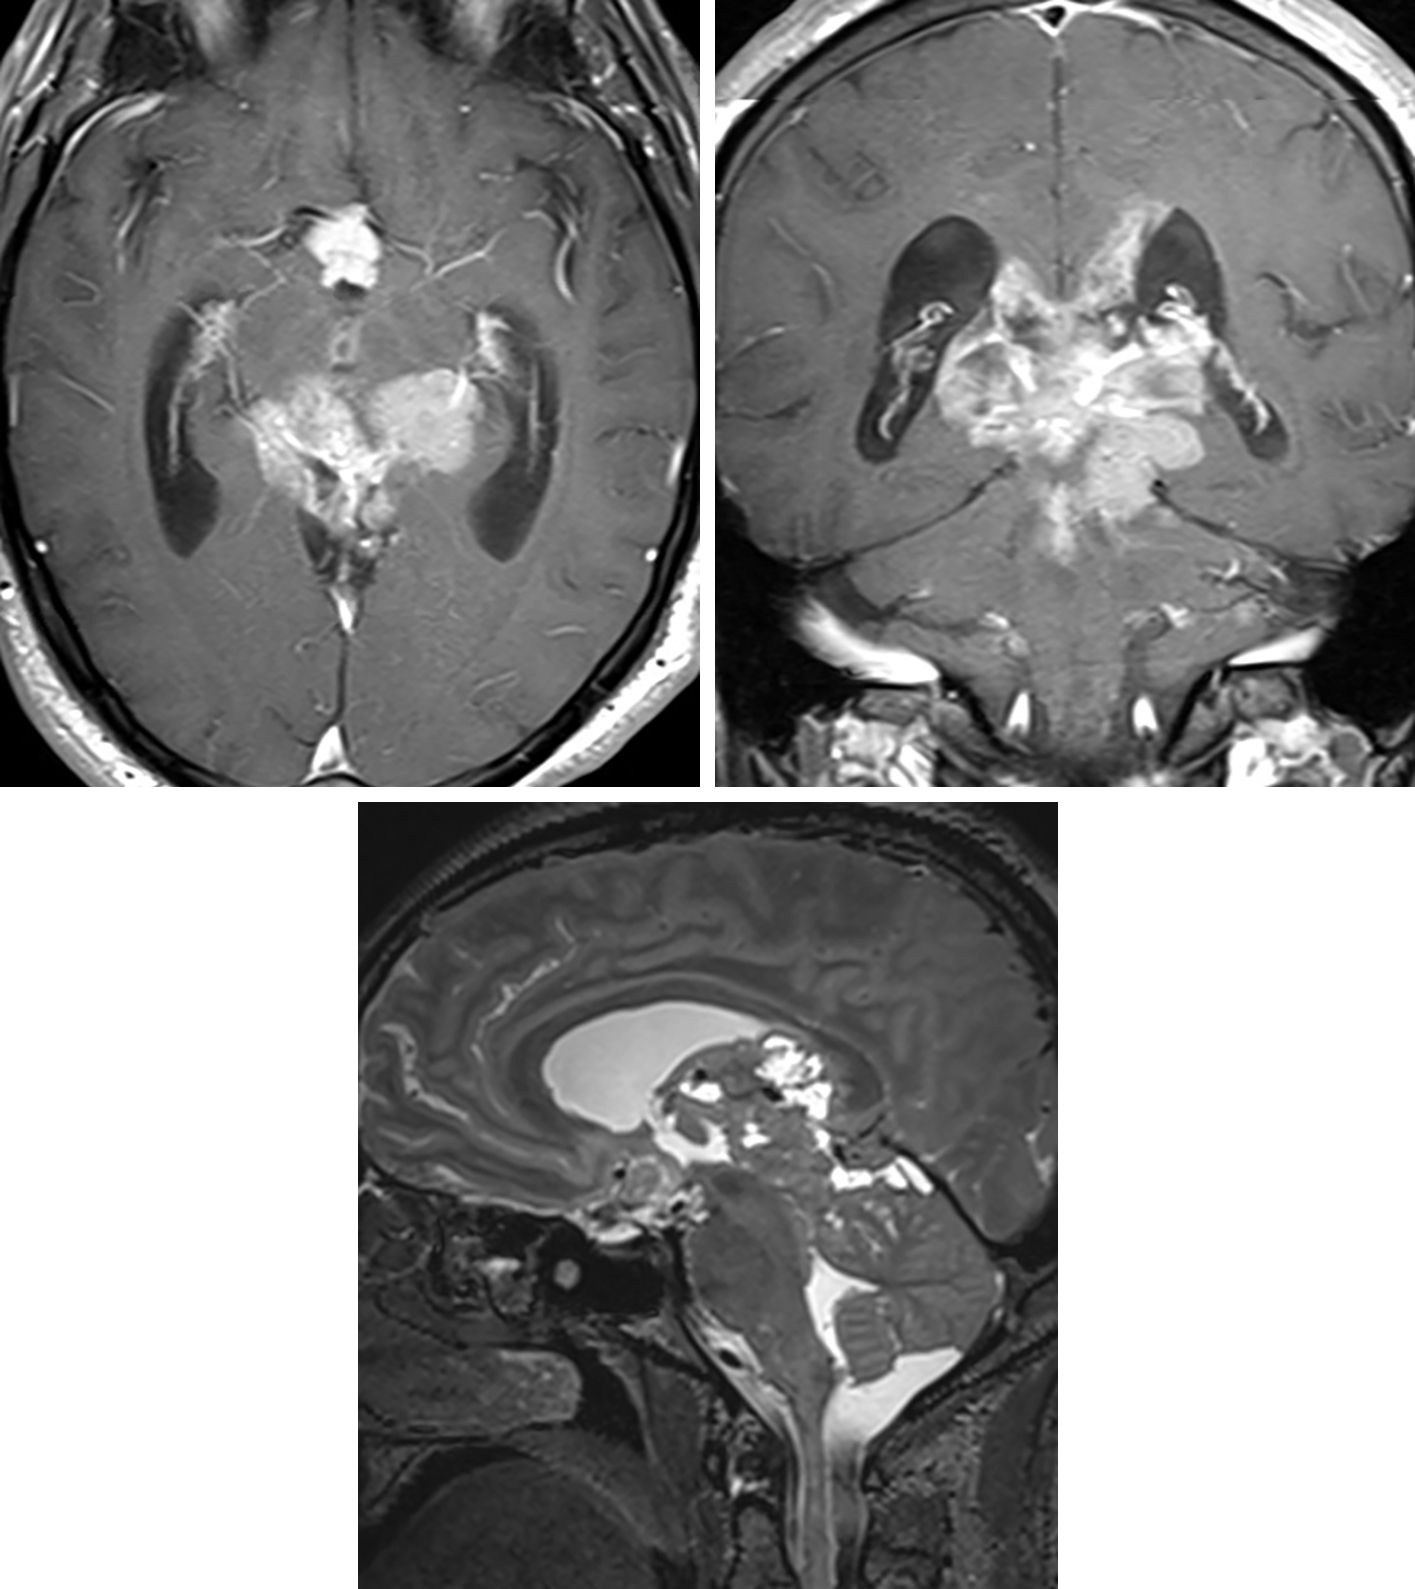 Figure 3: (Top Left and Top Right) Although centered in the pineal region, this heterogeneously enhancing lesion demonstrates the infiltrative appearance on axial and coronal postcontrast T1 imaging that can help to distinguish pineoblastoma from lower-grade primary pineal tumors. (Bottom) Cystic/necrotic changes are also visible in this large lesion on sagittal T2 imaging.